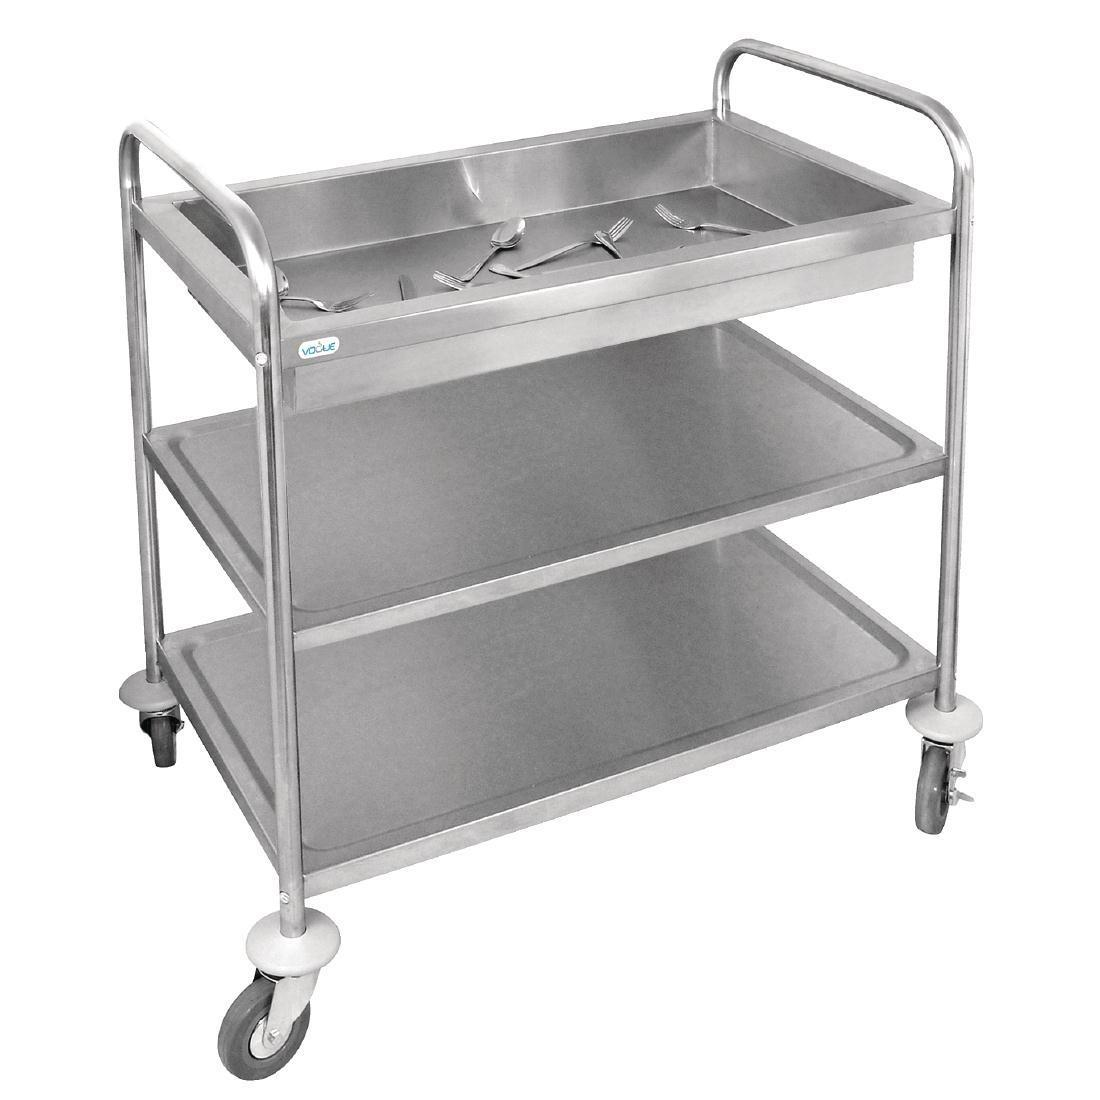 Vogue Stainless Steel 3 Tier Deep Tray Clearing Trolley - Each - CC365